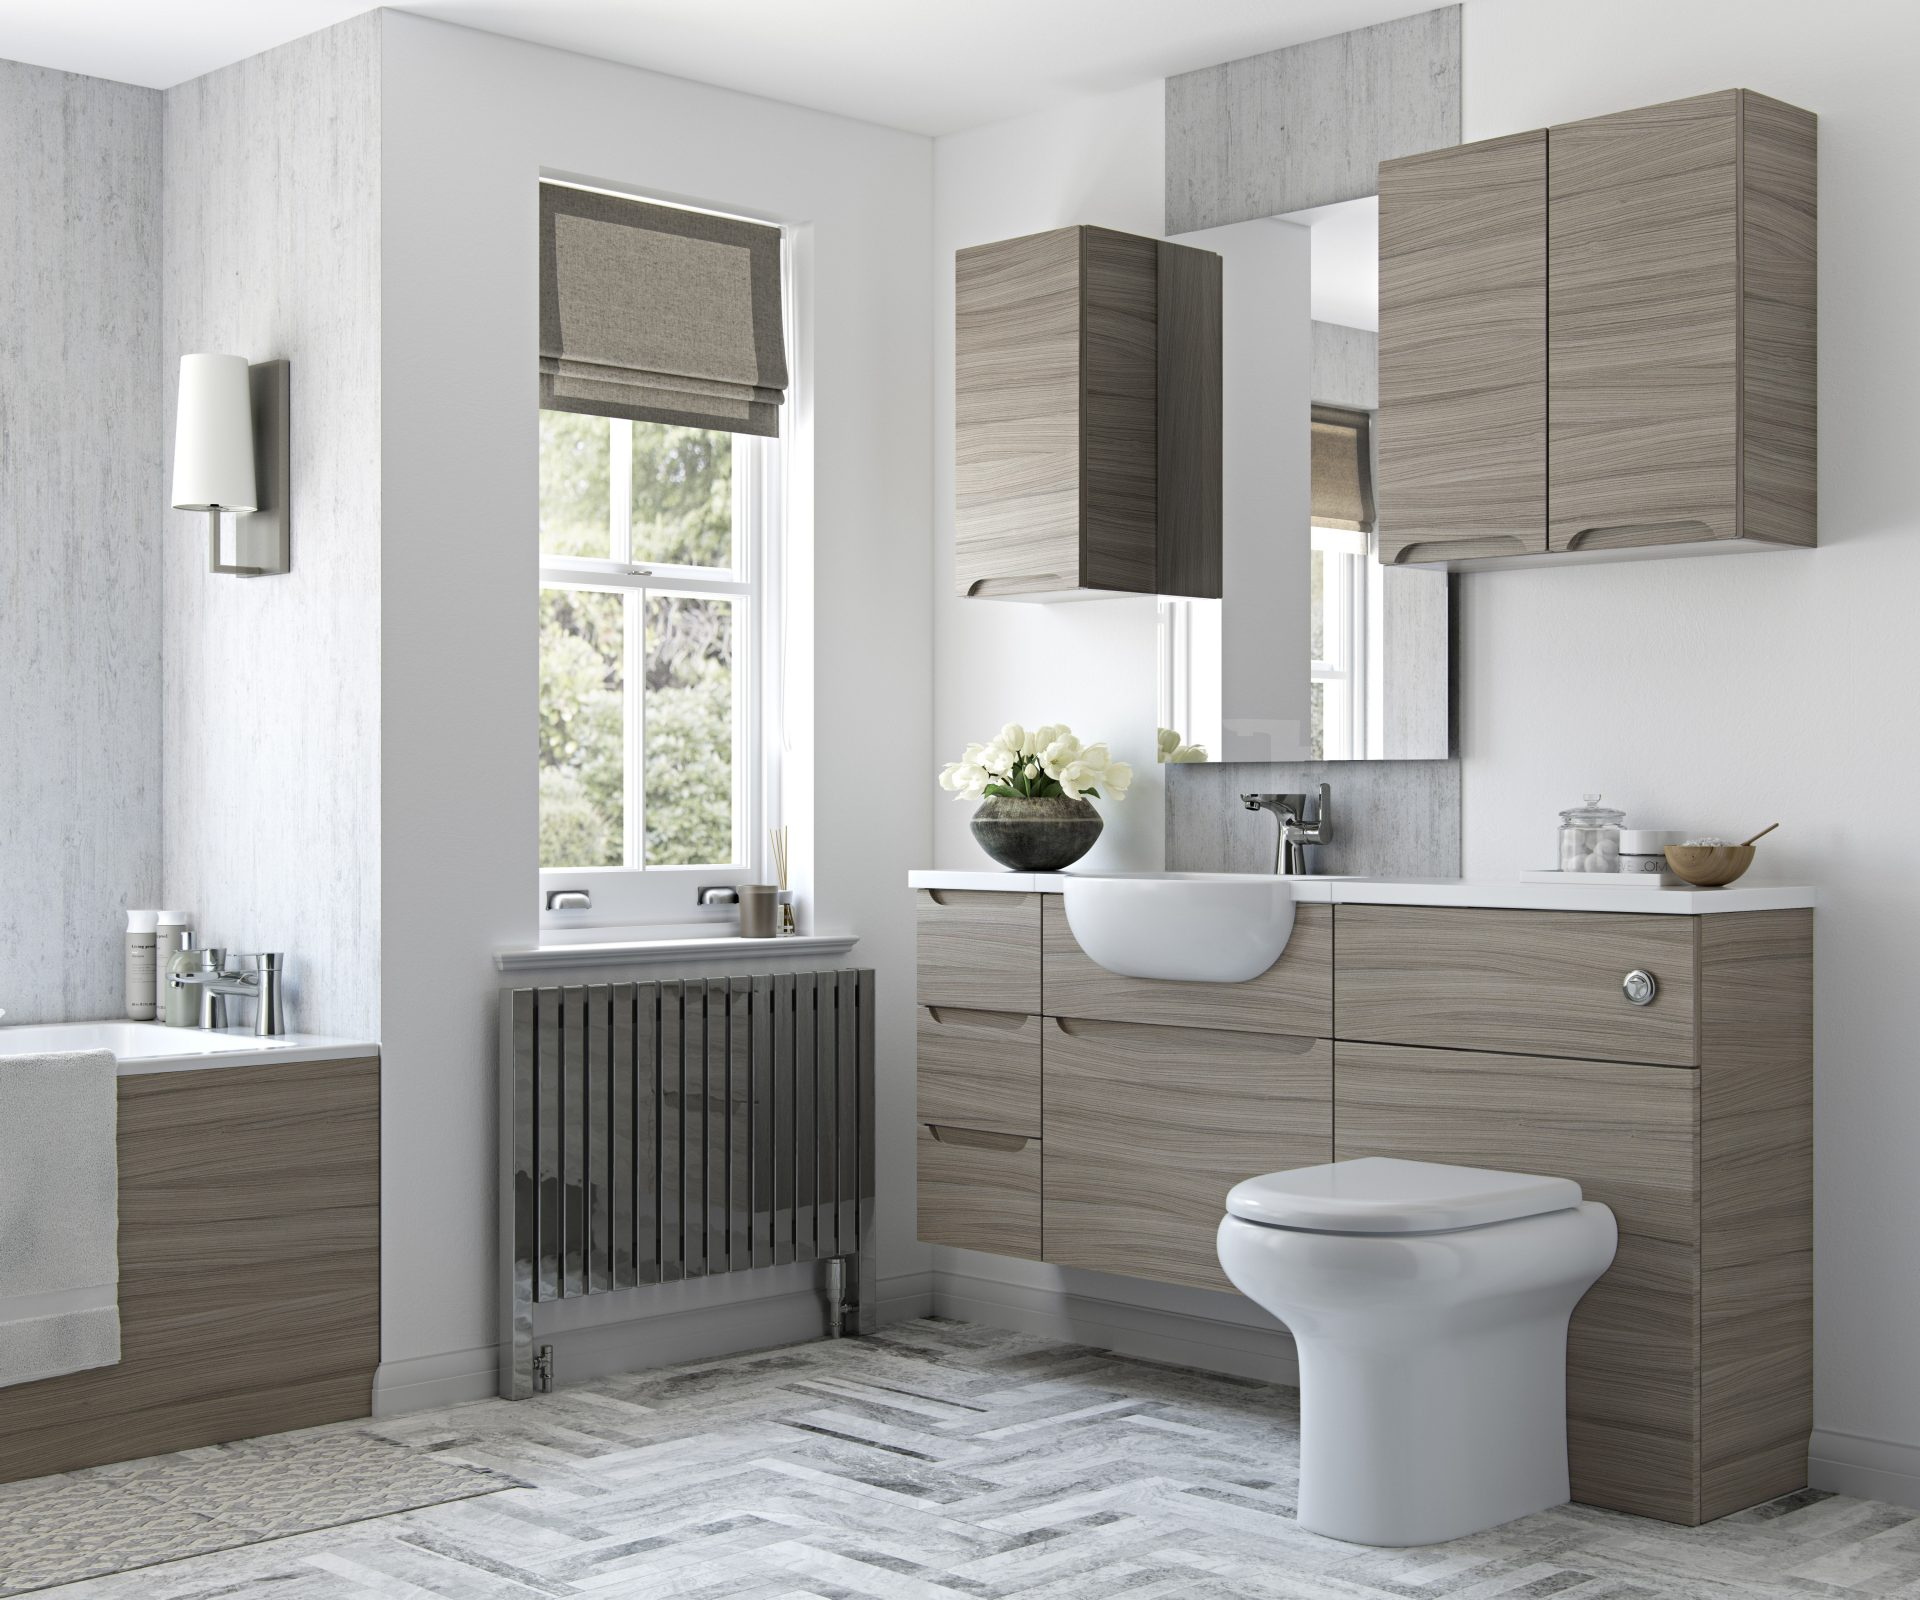 Driftwood Pull Handle Fitted Bathroom Design Telford